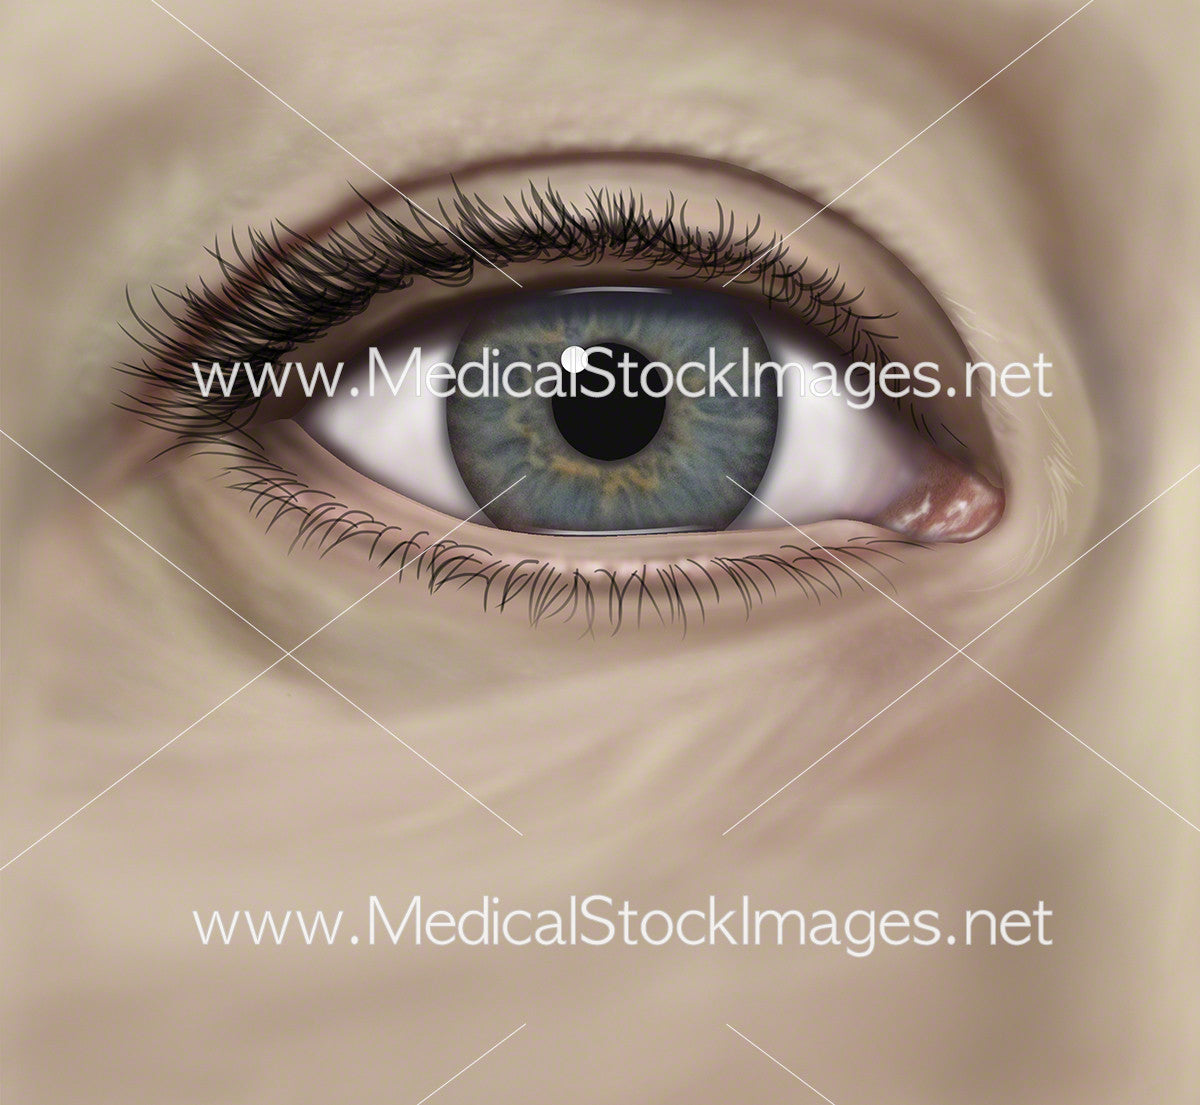 Surface Anatomy of the Eye – Medical Stock Images Company